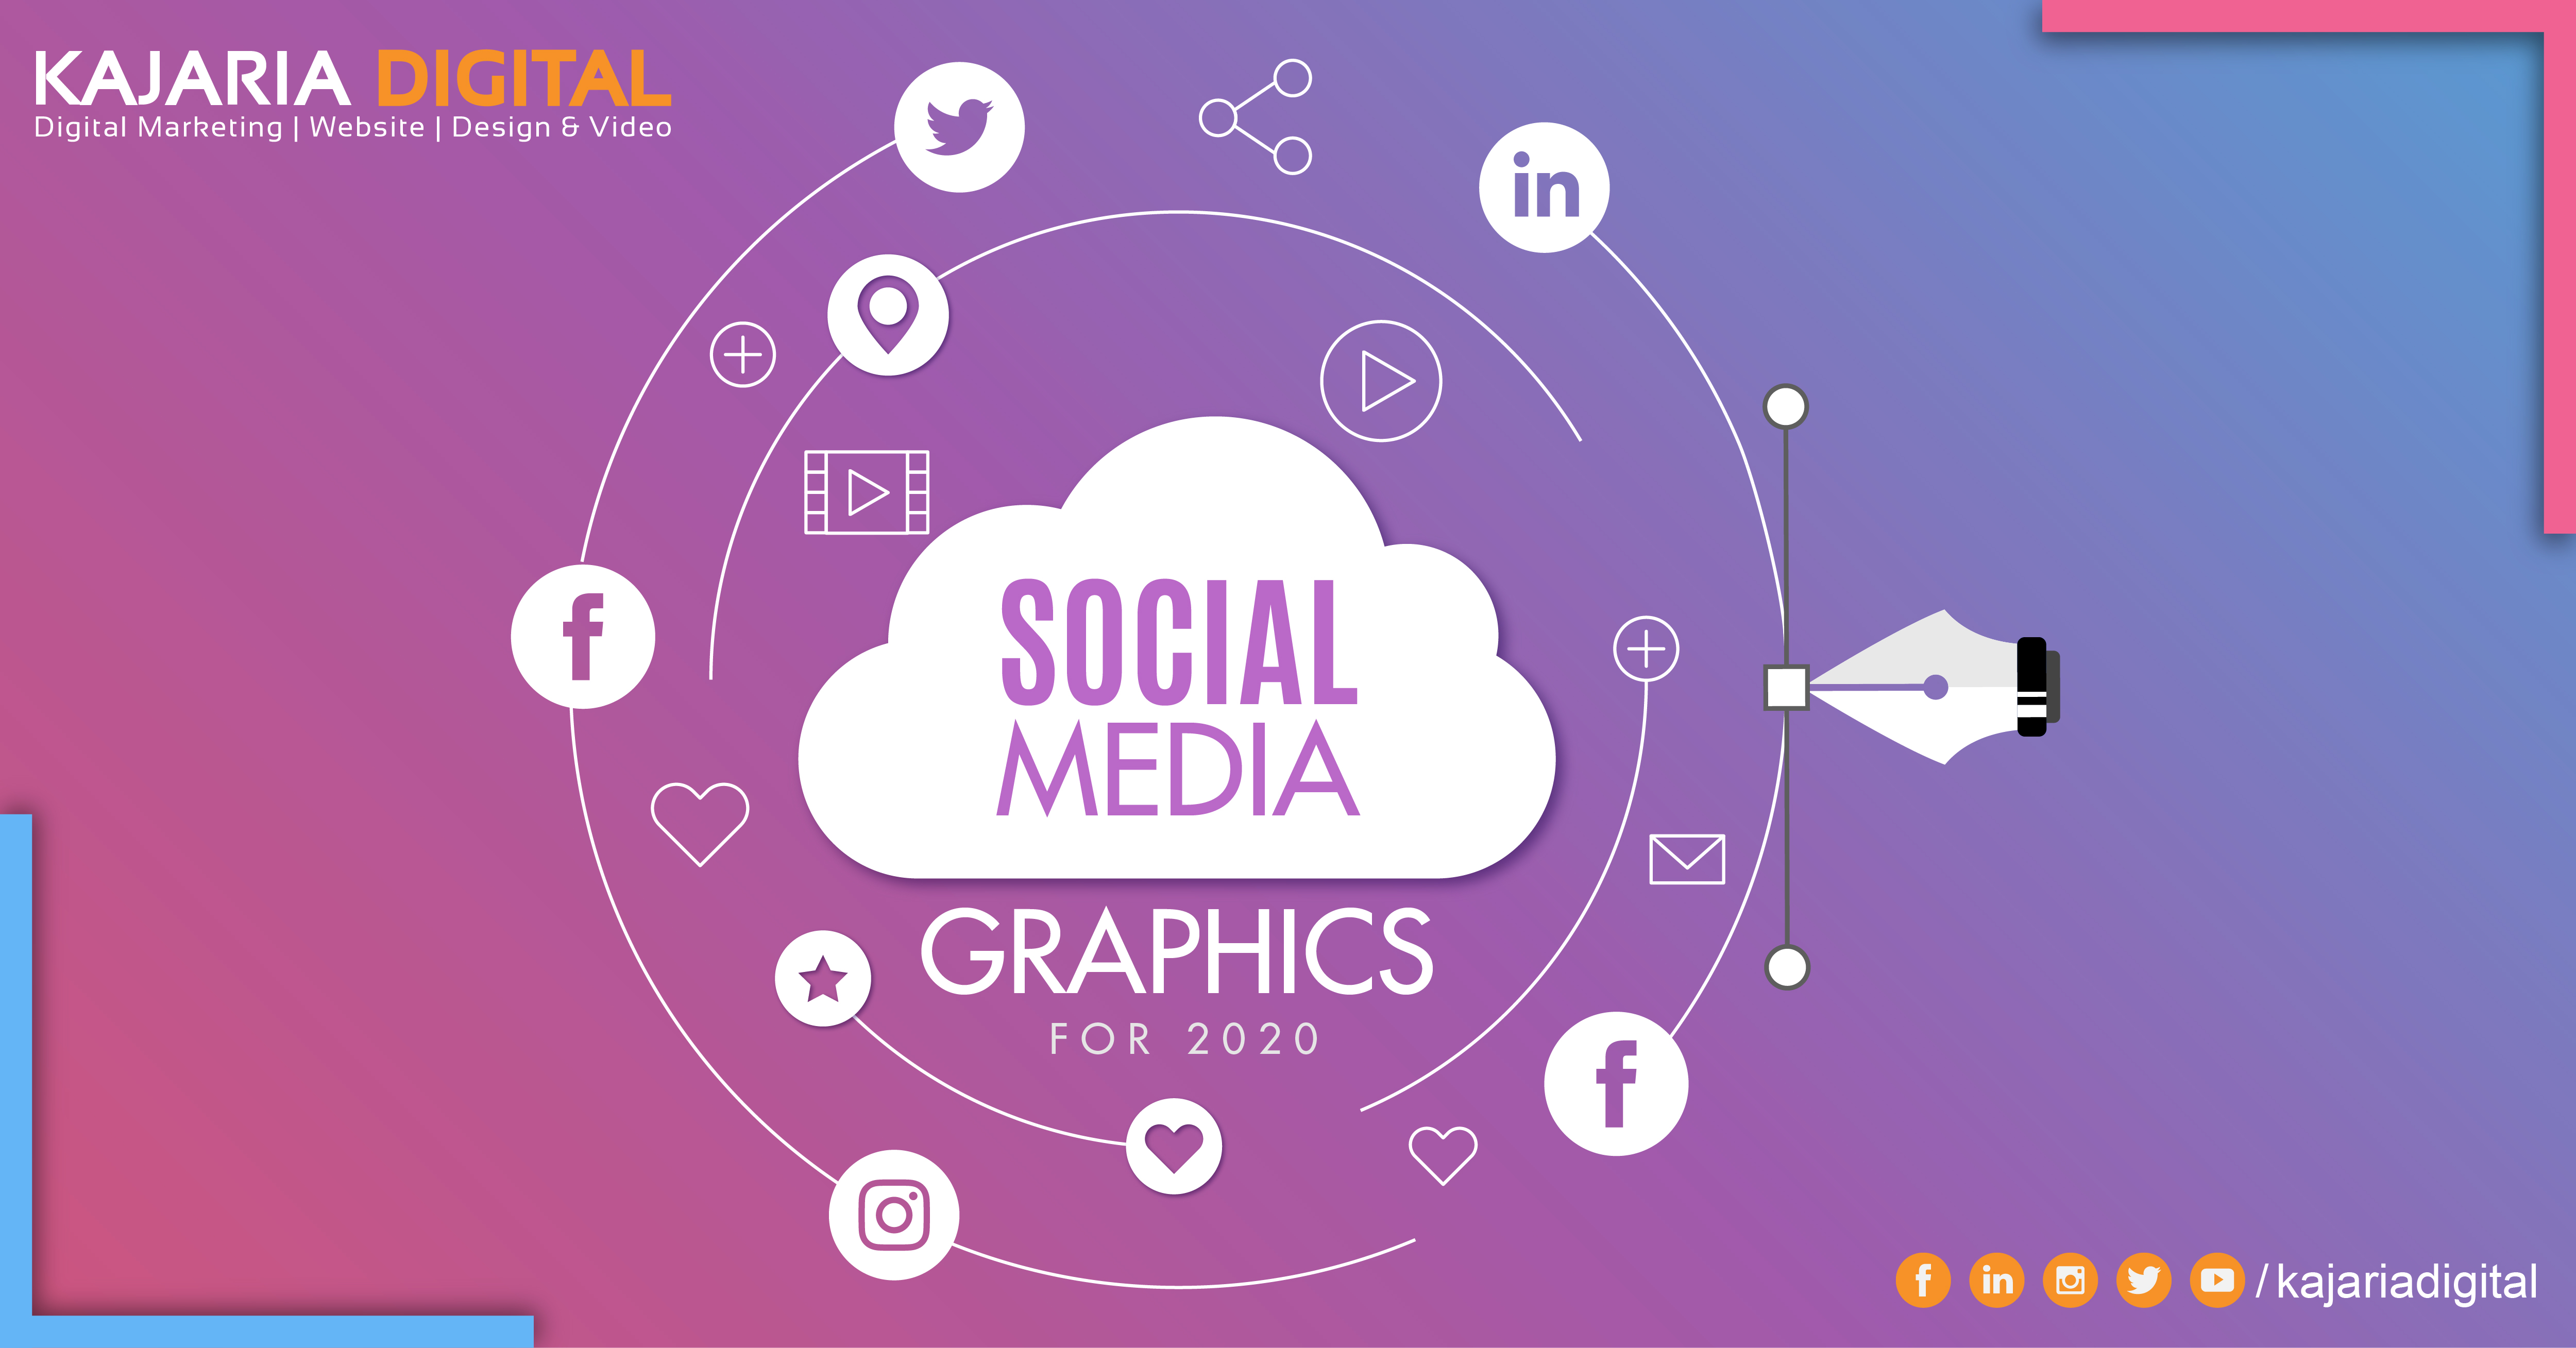 5 Social Media Graphic Design Trends You Need To Know For 2020